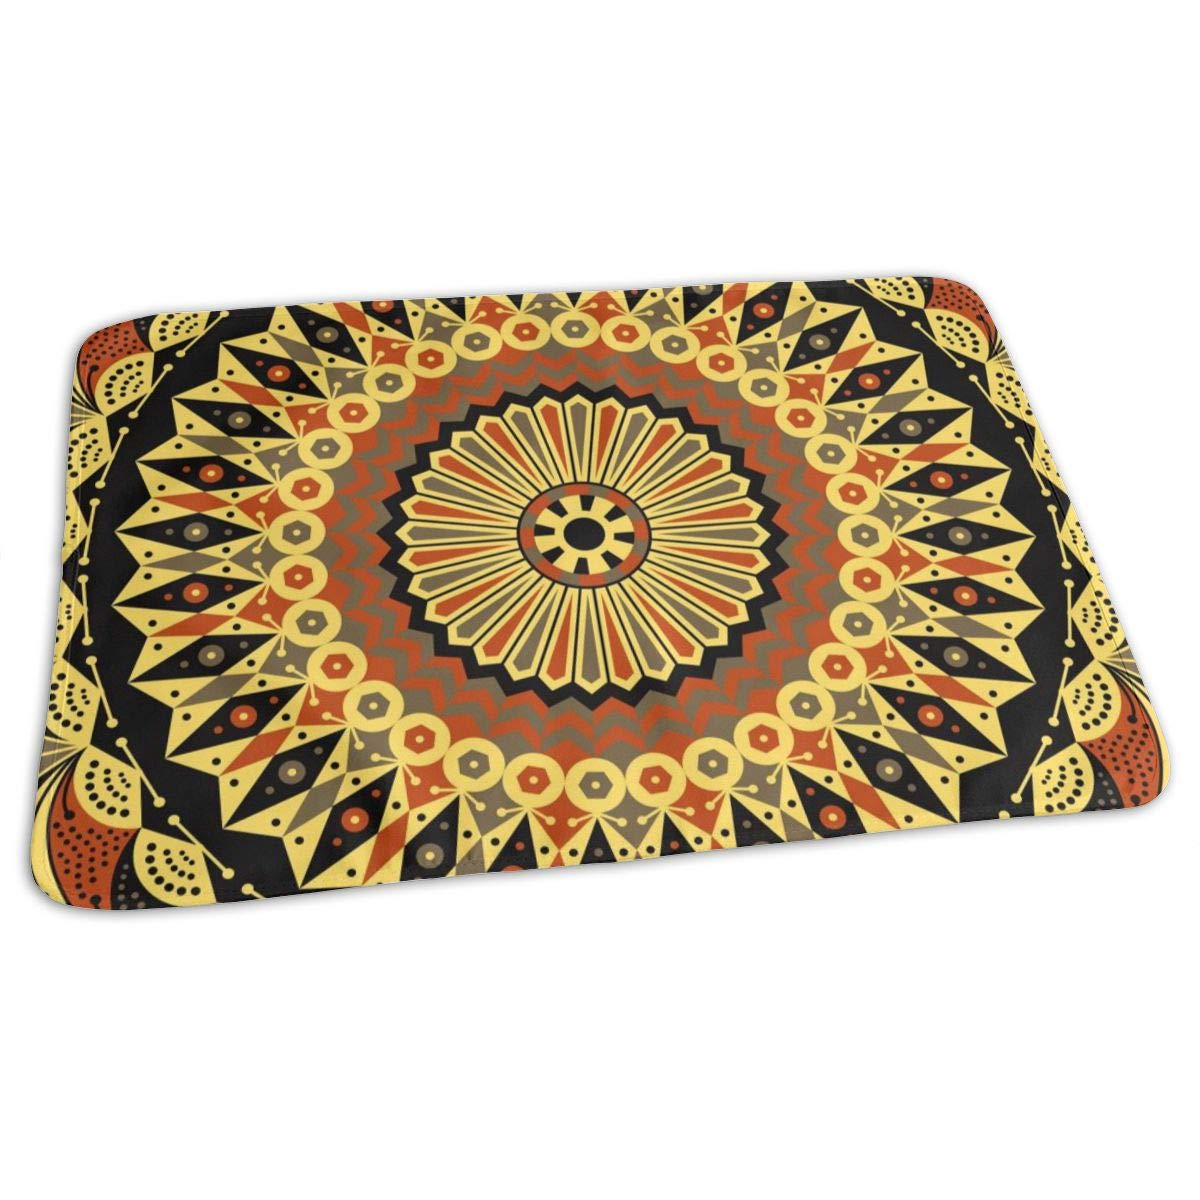 Osvbs Lovely Baby Reusable Waterproof Portable Colorful Ethnic Arabesque Patterned Background Changing Pad Home Travel 27.5''x19.7'' by Osvbs